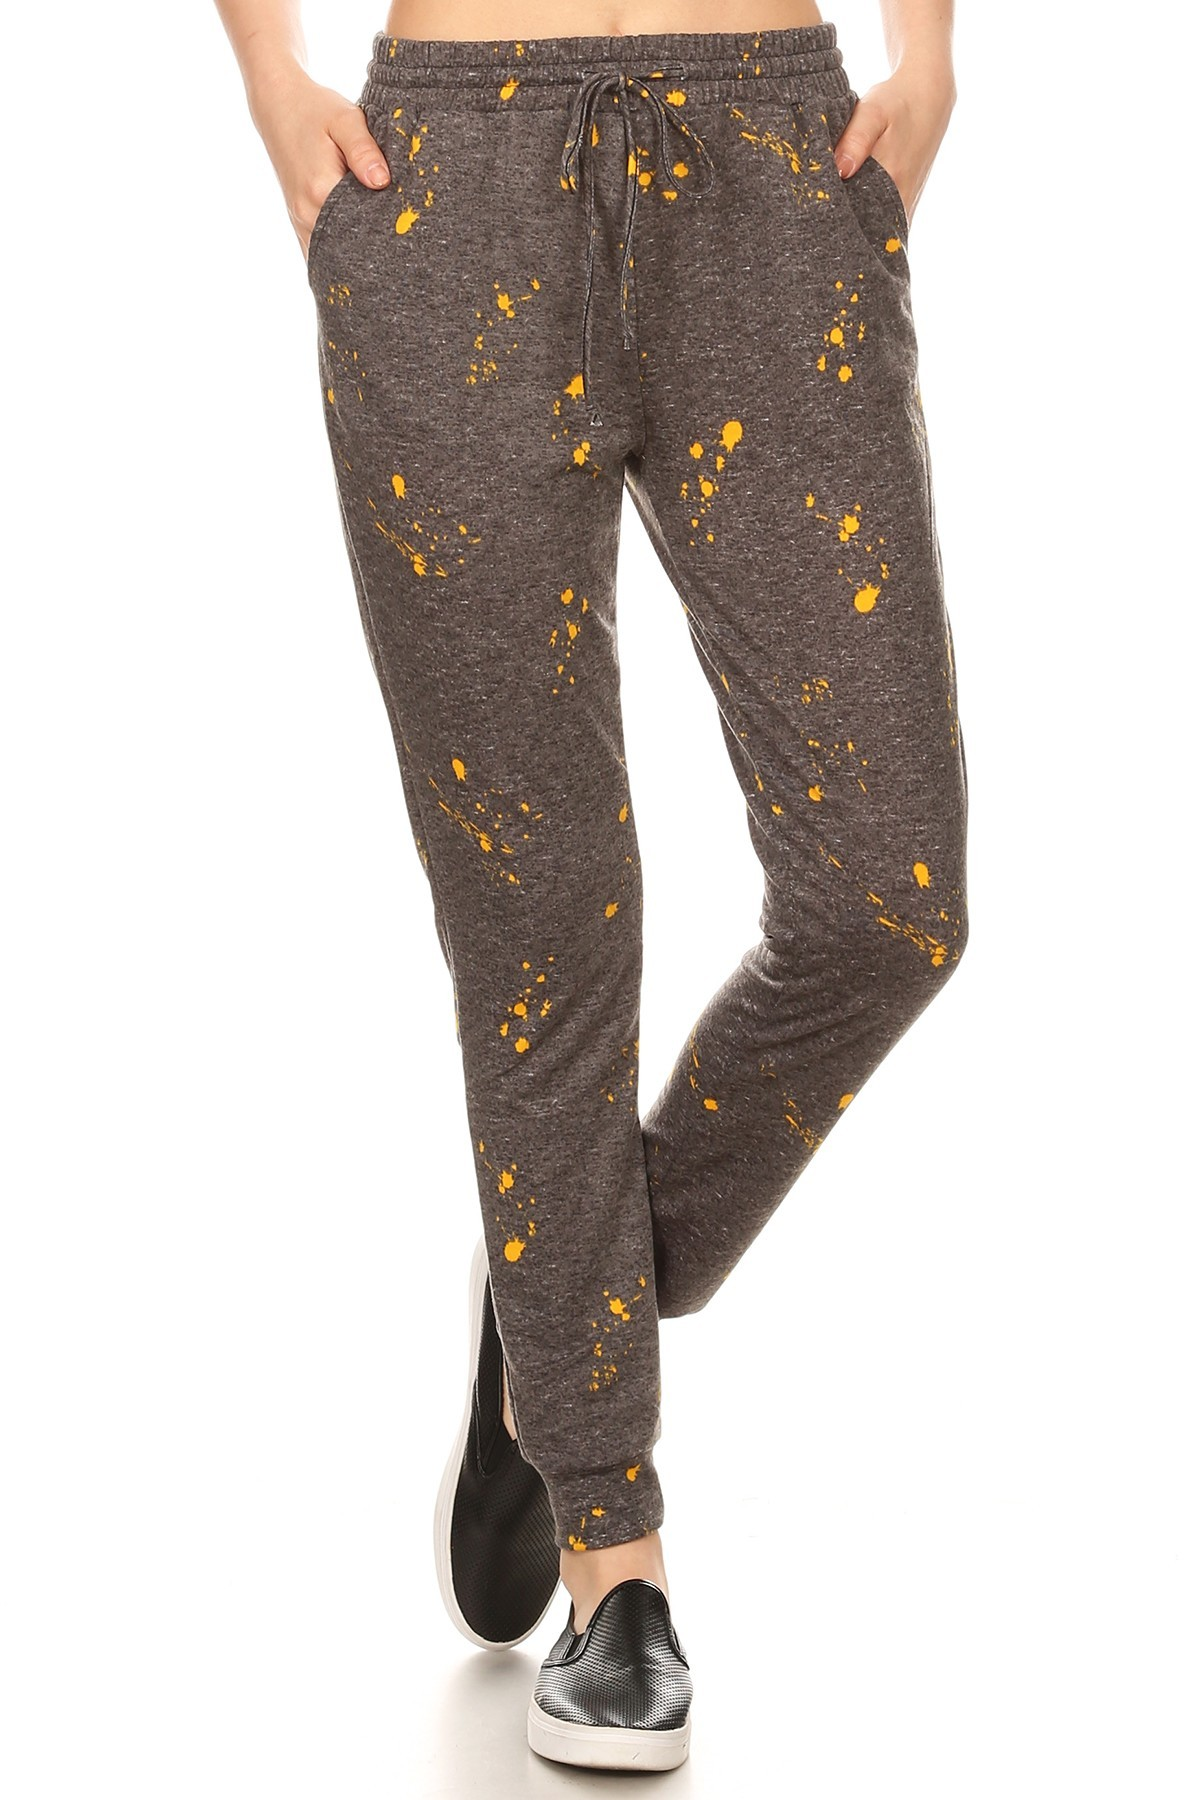 HEATHER CHARCOAL/MUSTARD PAINT SPLASH PRINT SOFT FRENCH TERRY JOGGER#8TRK30-04